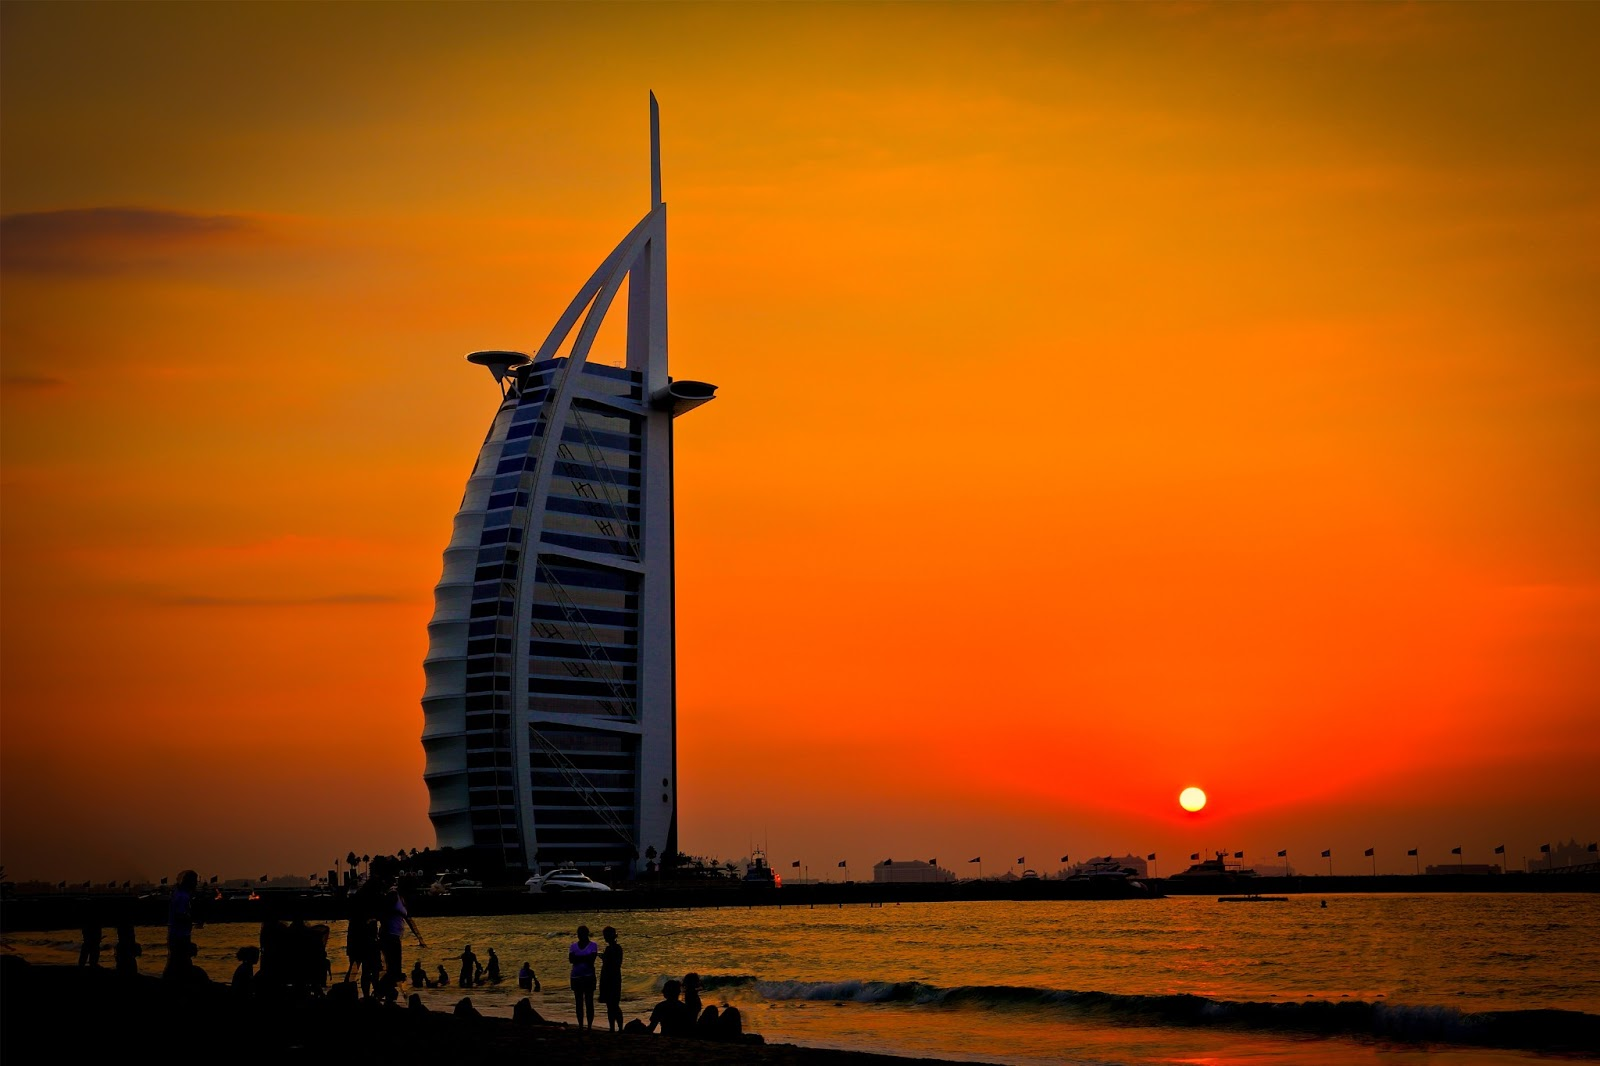 burj arab al uae sunset hotel dubai background persian gulf wallpapers scary youth uva emirates scientist country definition flickr forecast